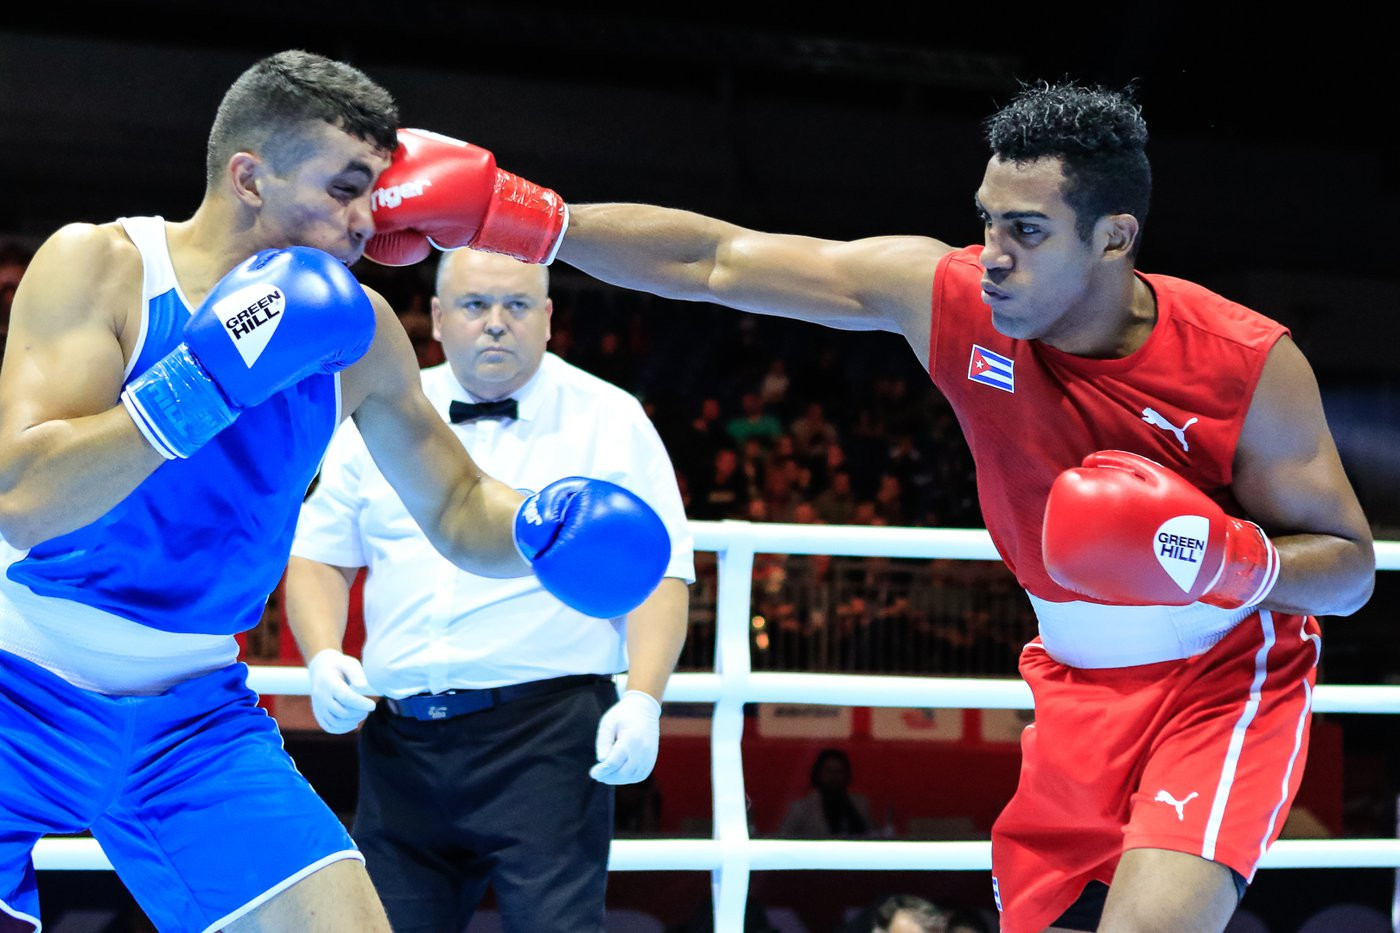 Middleweight star López triumphs in first bout at AIBA Men's World Championships